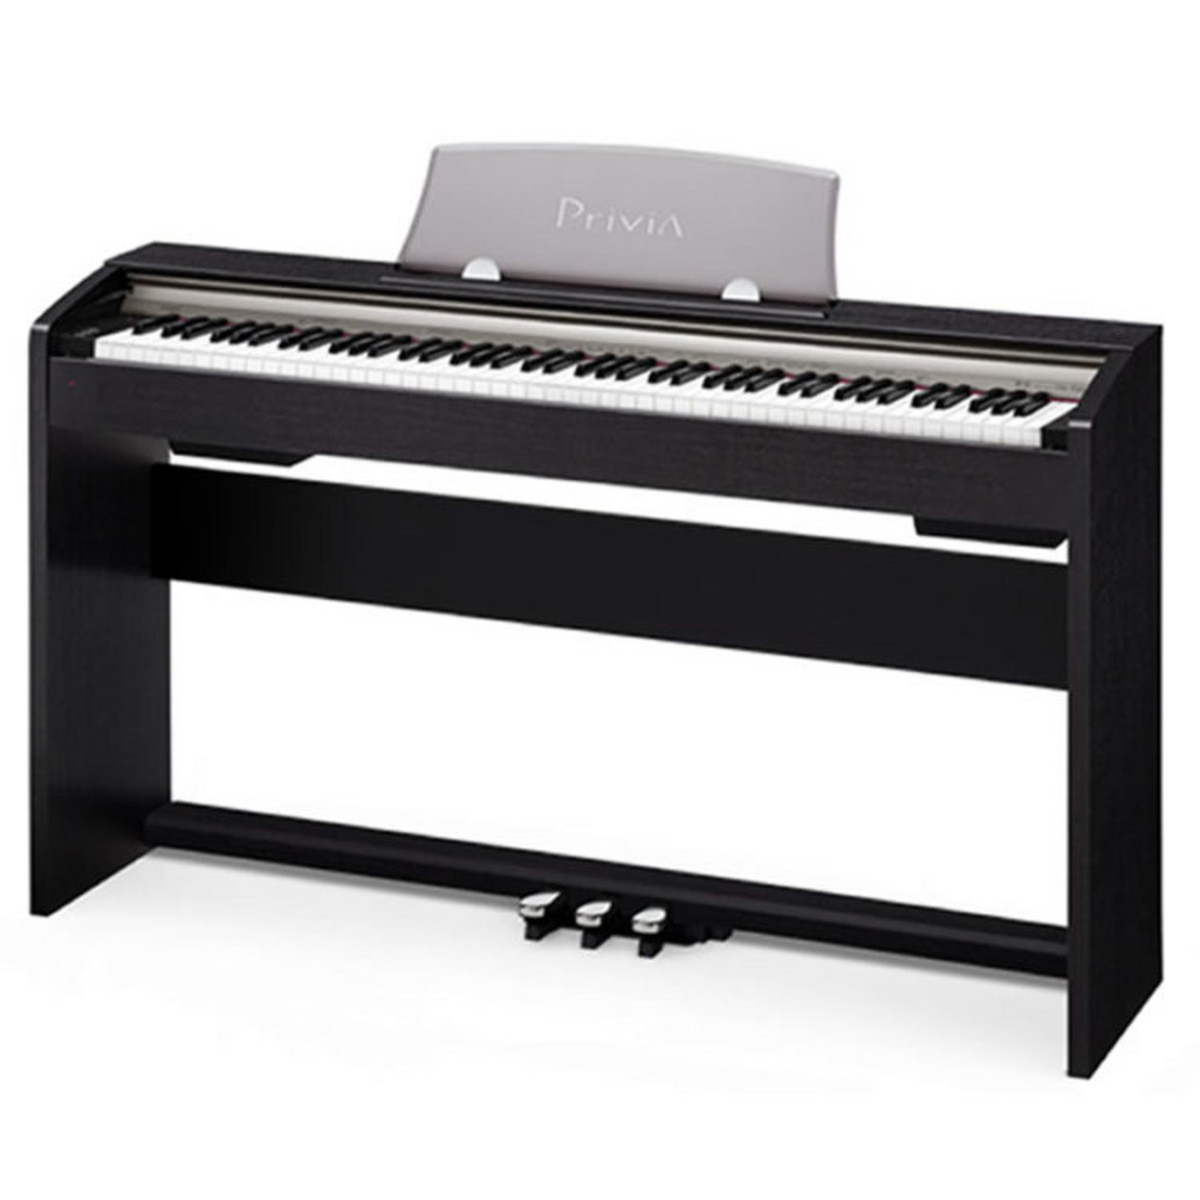 disc casio privia px 730 digital piano at. Black Bedroom Furniture Sets. Home Design Ideas